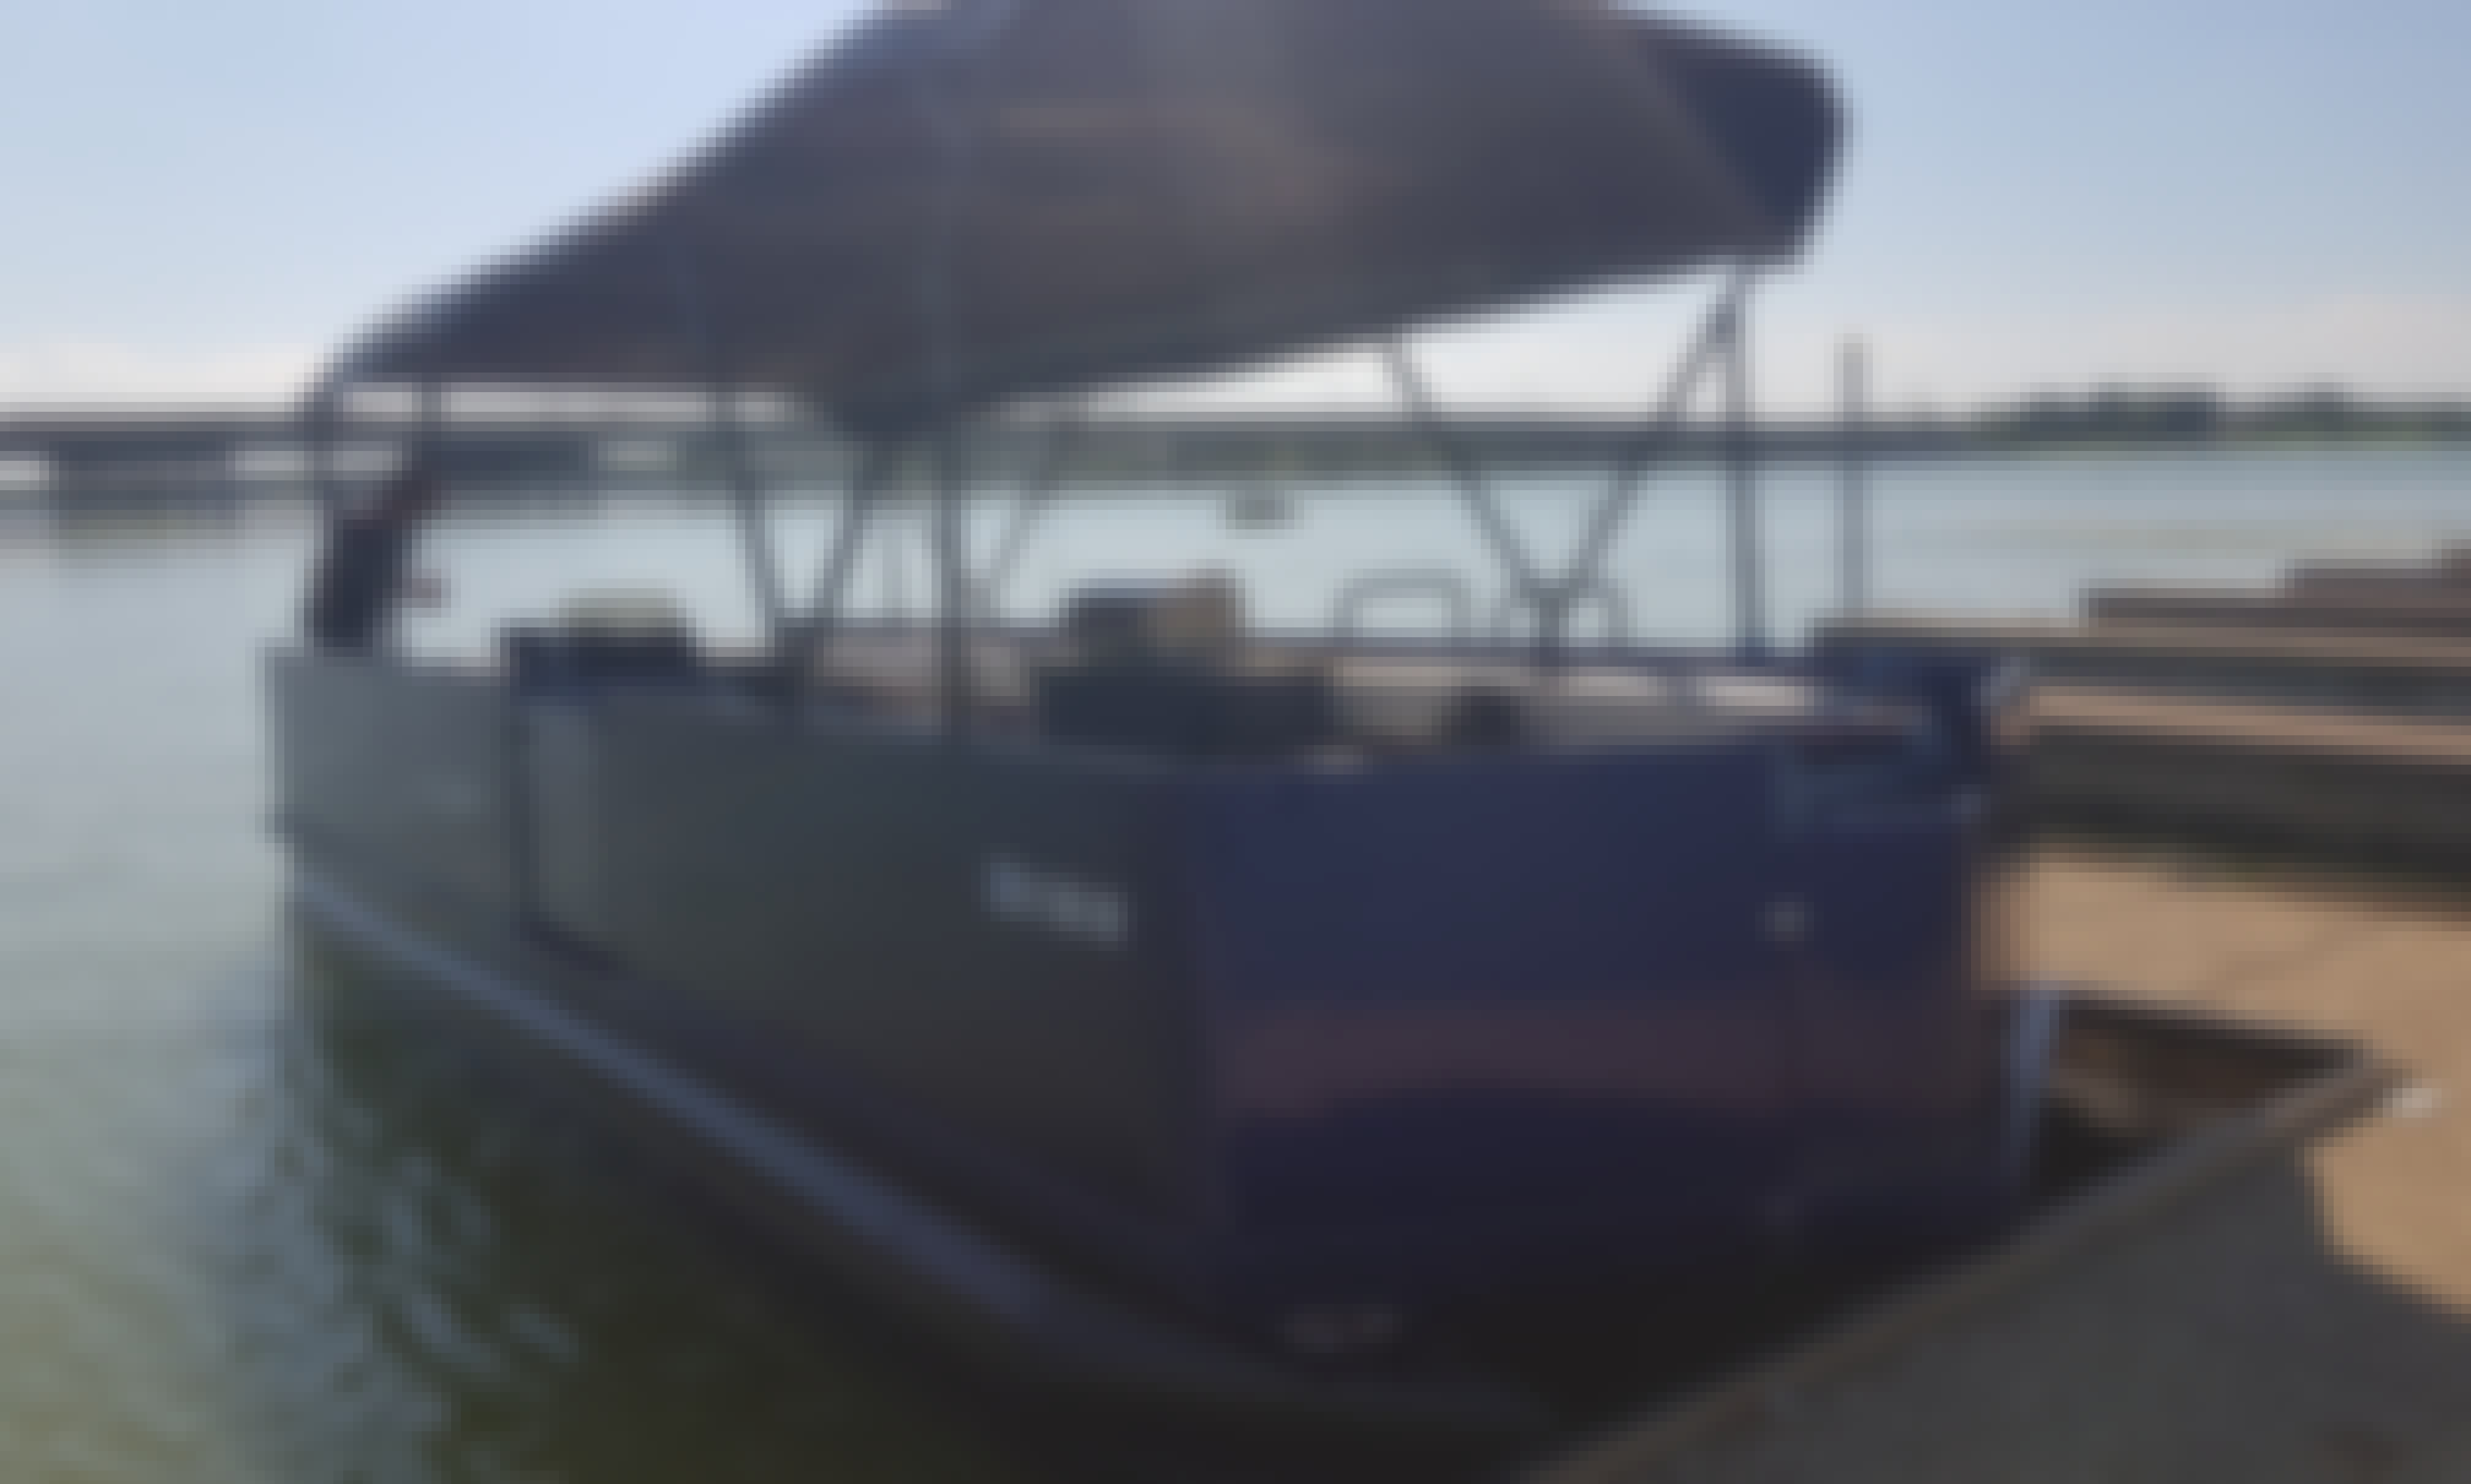 Pontoon 24' Party Boat with Grill; burgers, hot dogs,tacos. ask about menu.